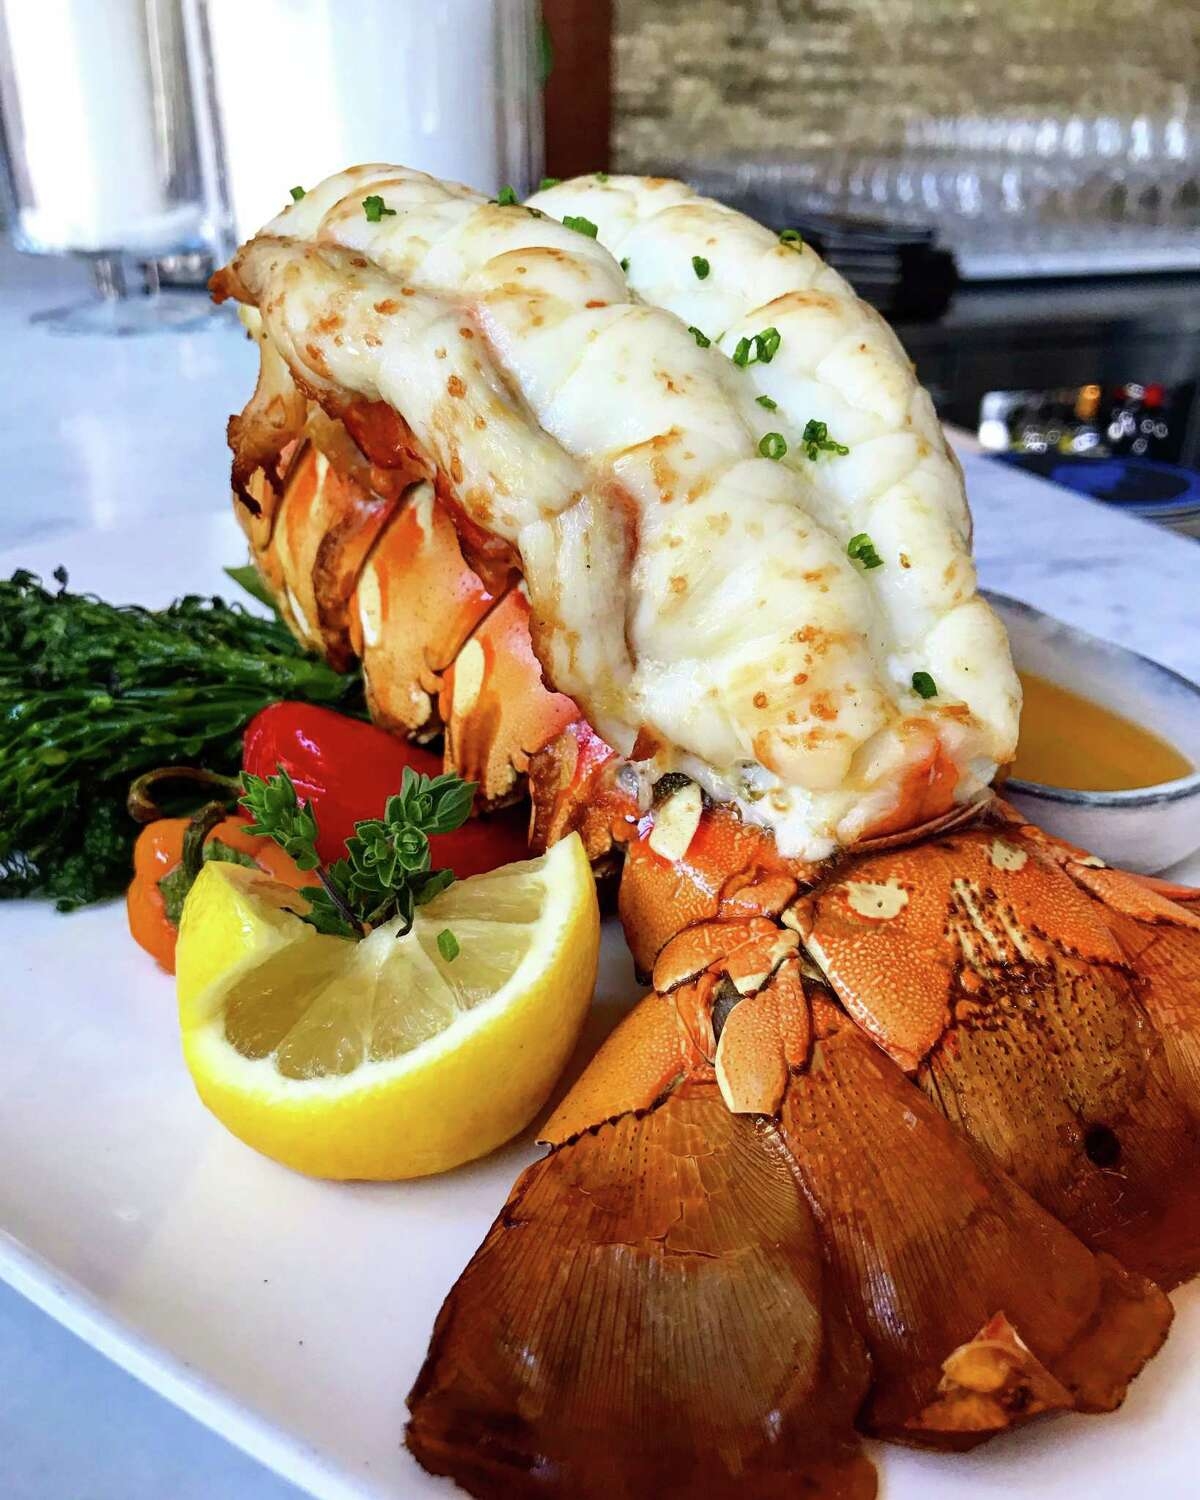 Australian lobster tail with Mediterranean butter baste and grilled vegetables at Ouzo Bay.